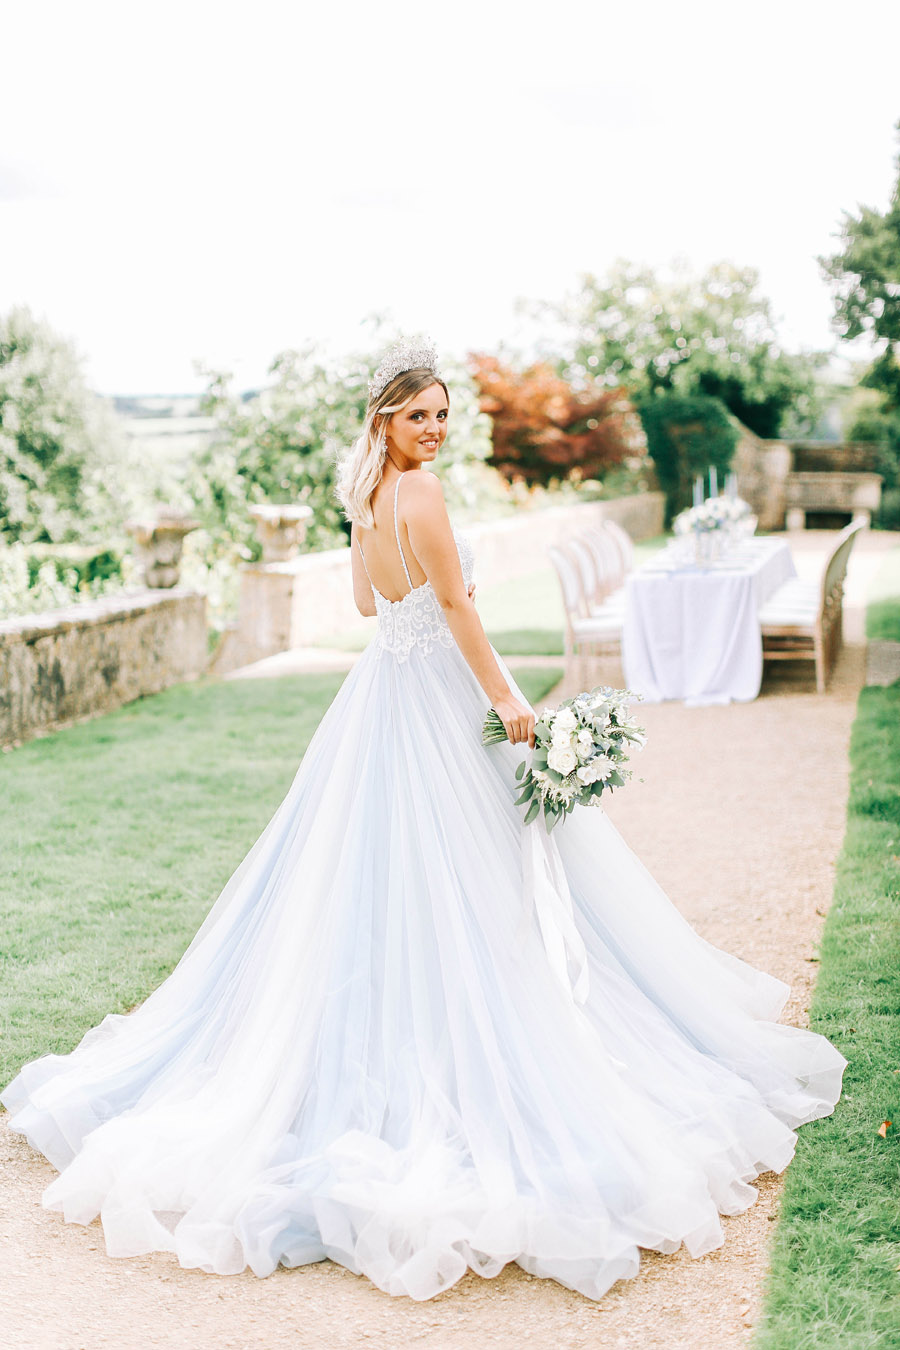 Enchanted Fairytale inspired shoot at Hamswell House, photography credit Charlotte Wise, wedding planner Lucy Ann Reid (23)